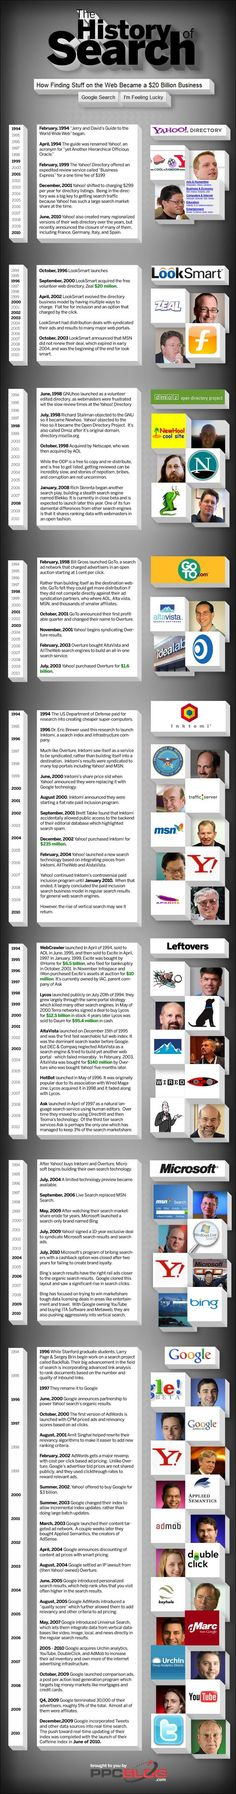 History of Search Engine - Timeline